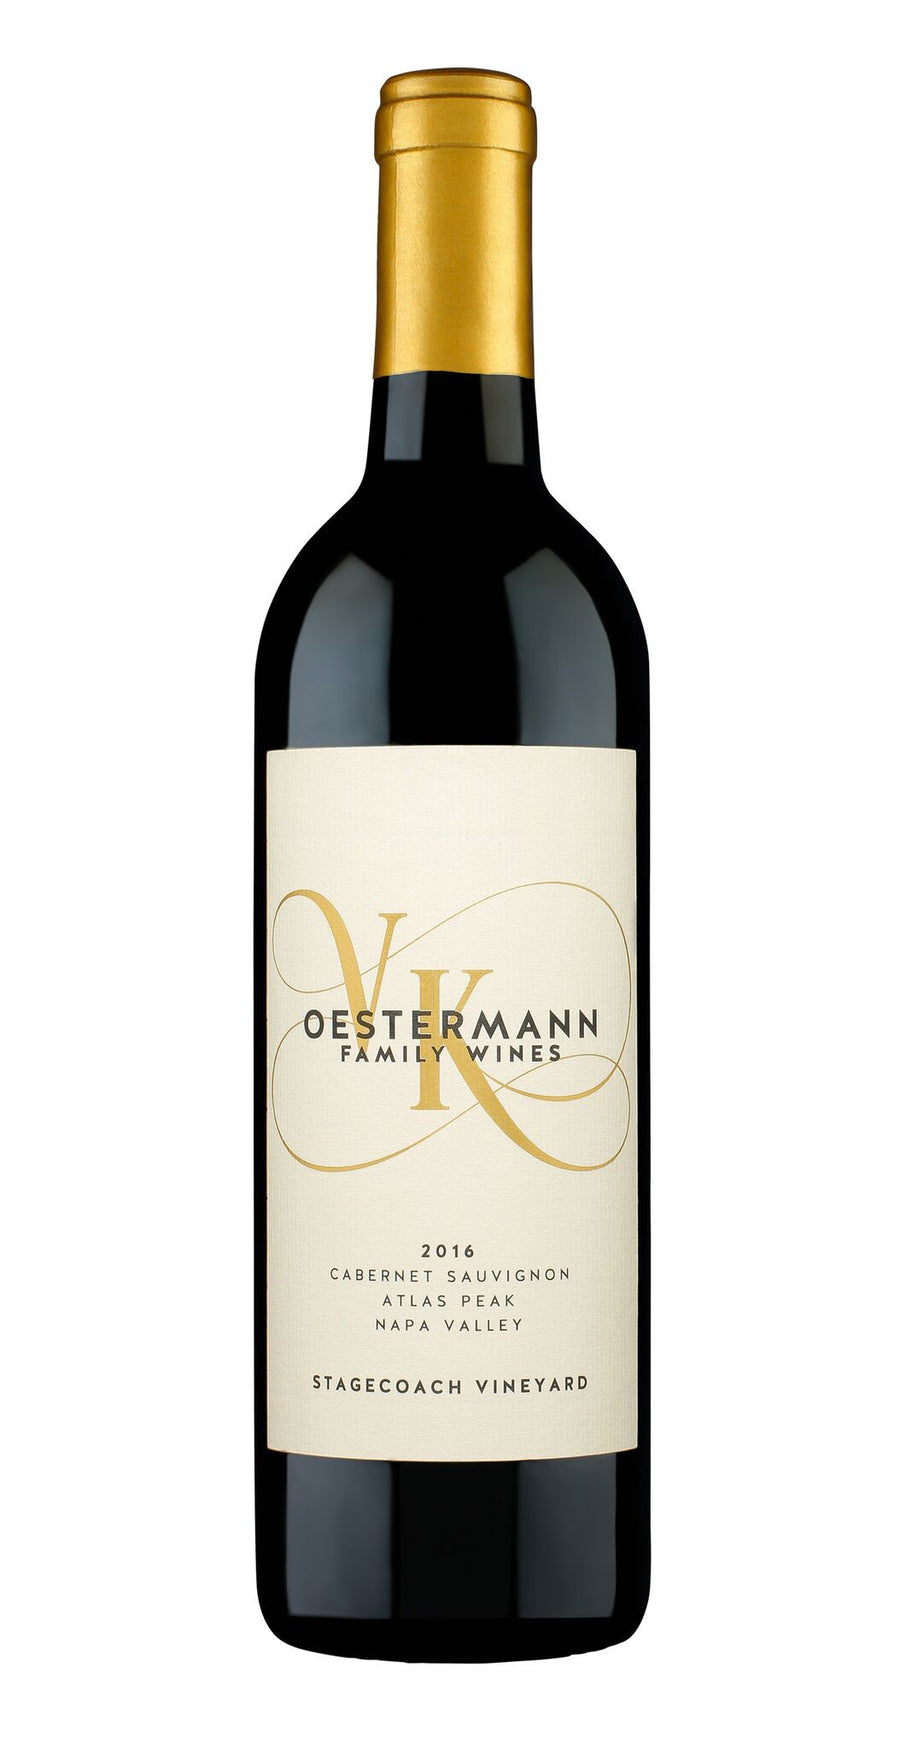 2016 Oestermann Family Wines Cabernet Sauvignon Stagecoach Vineyard